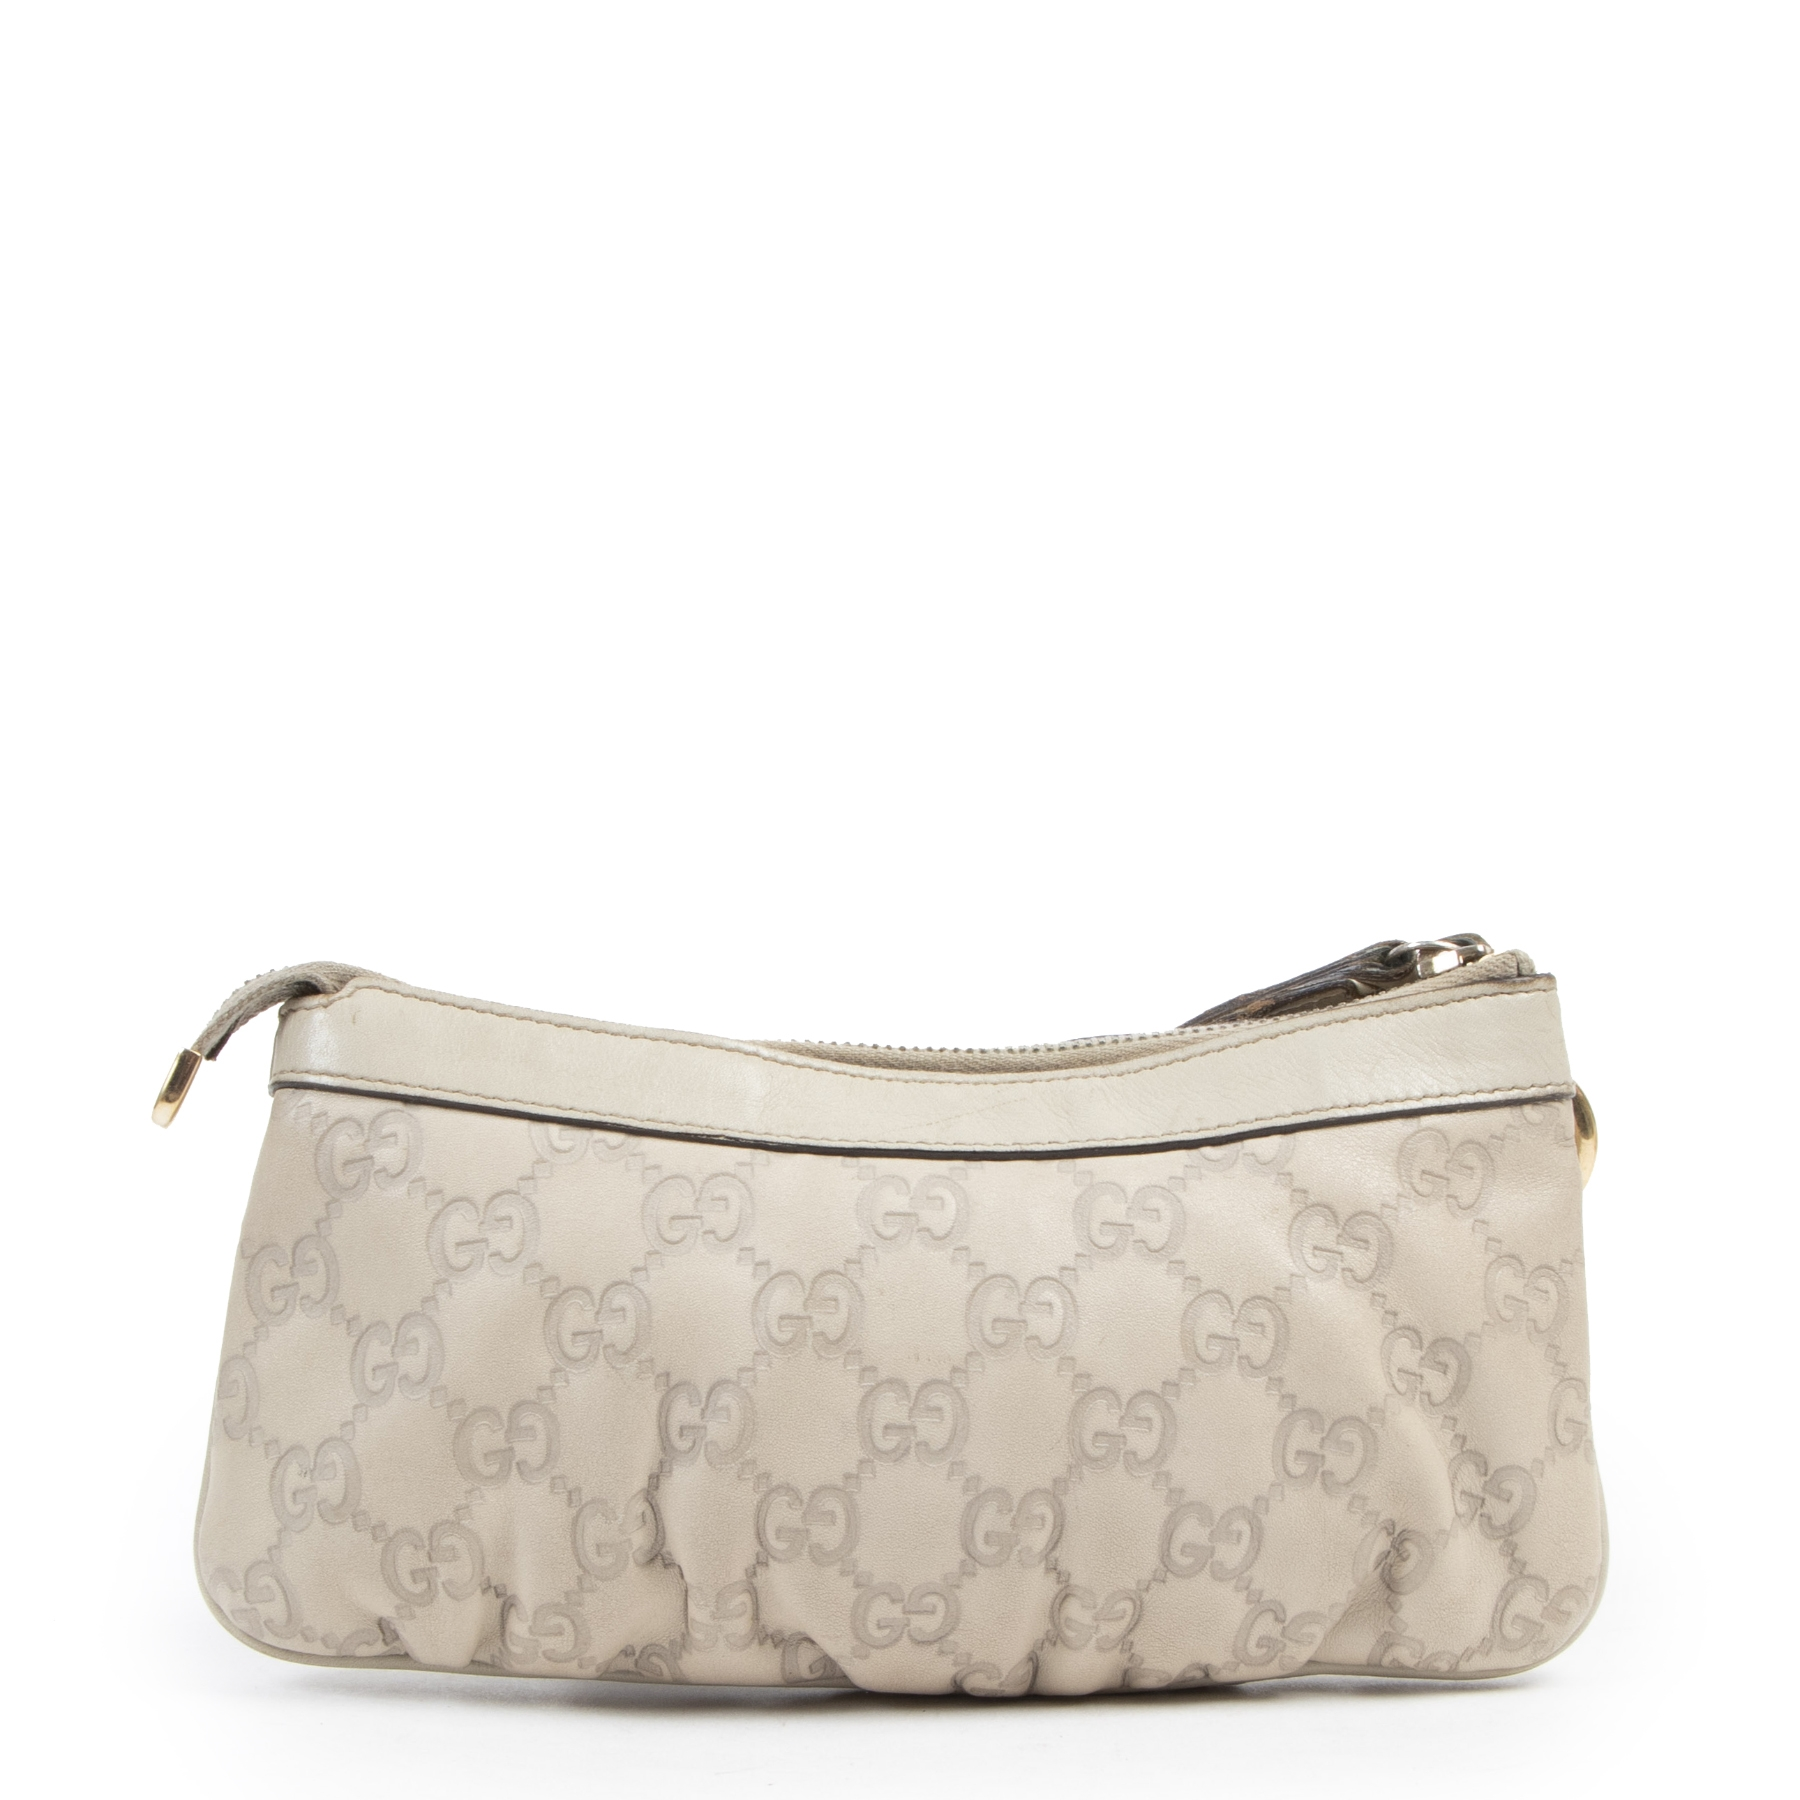 Authentic second-hand vintage Gucci Beige Leather Guccissima Wristlet Pochette buy online webshop LabelLOV